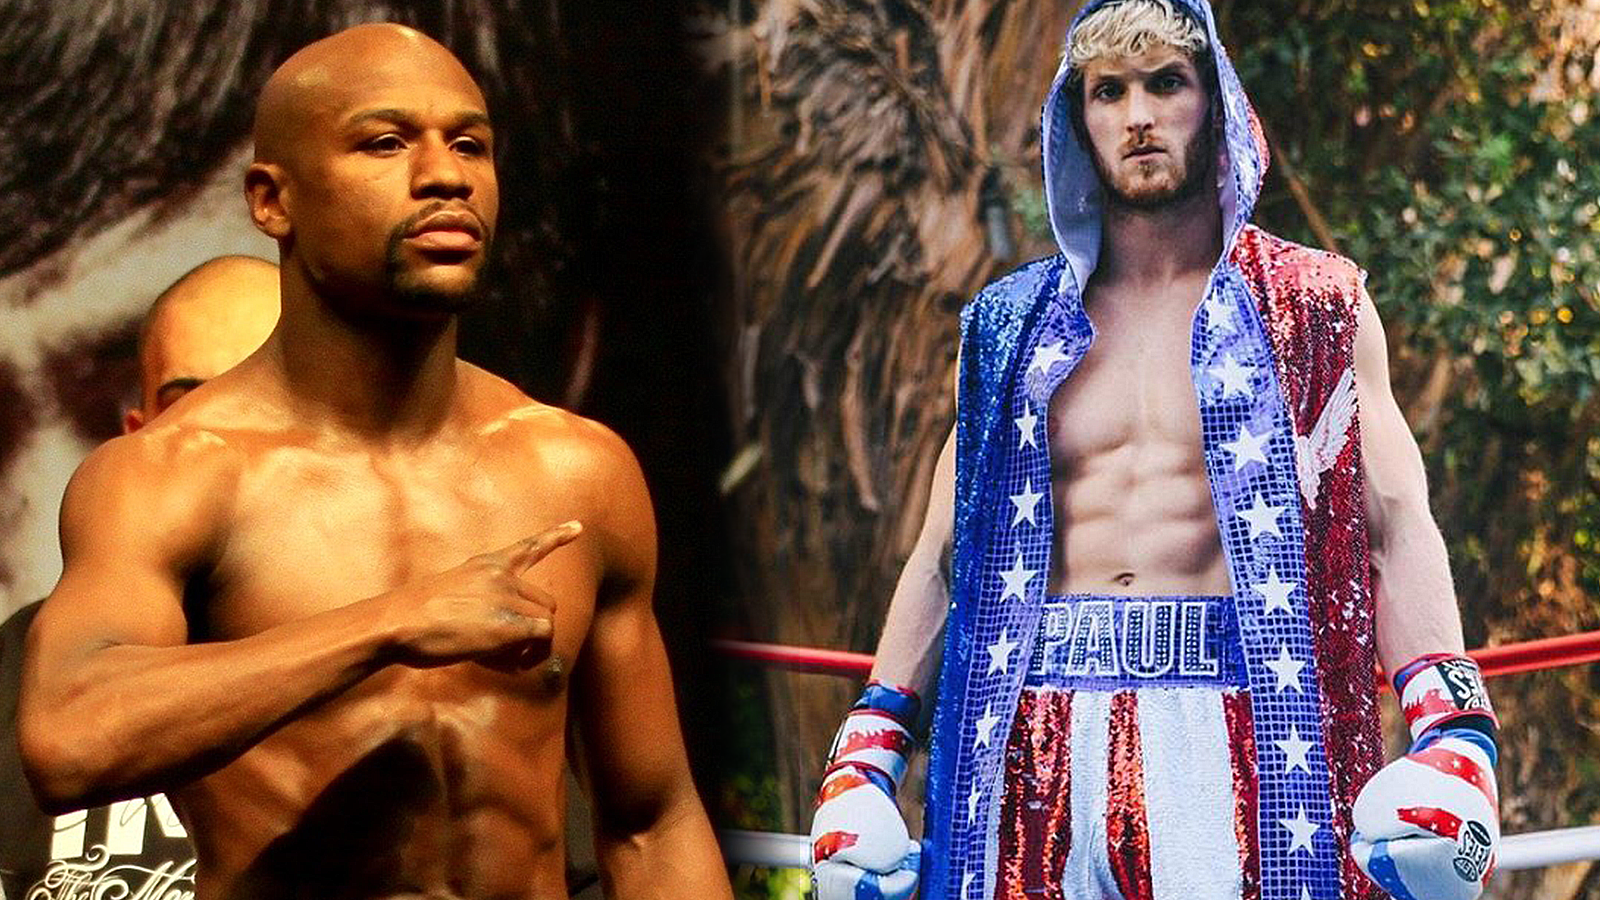 Floyd Mayweather and Logan Paul stand side by side in boxing gear.